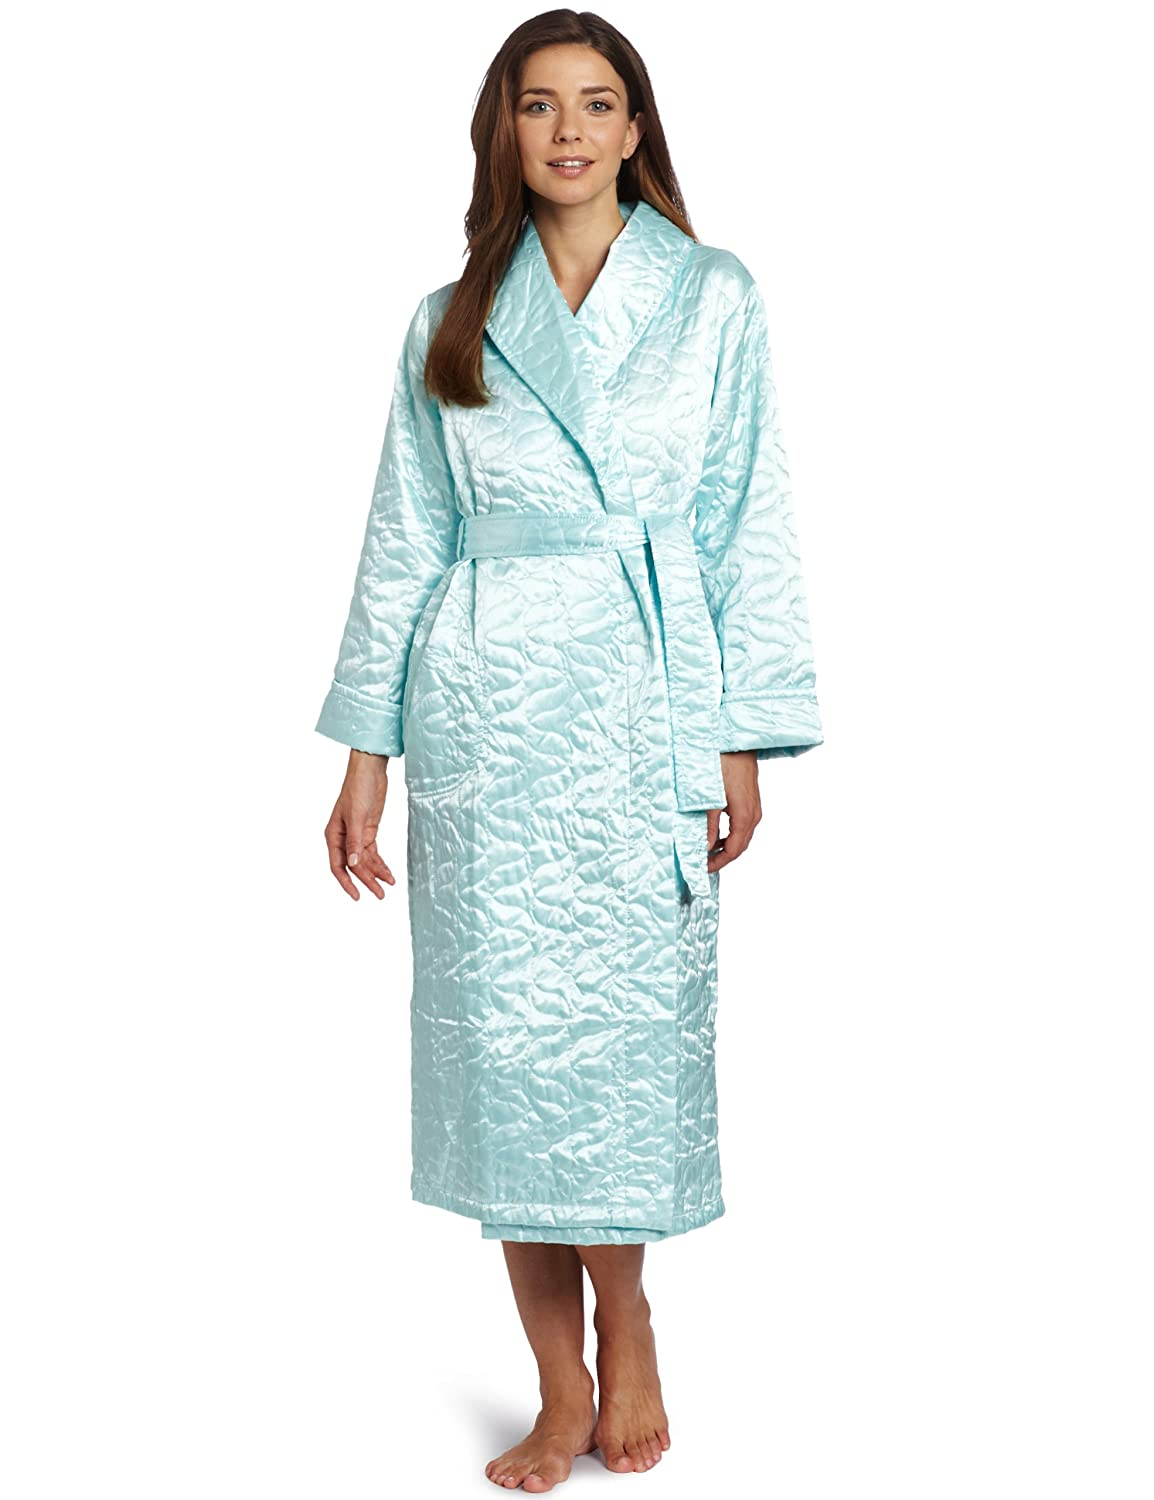 Find great deals on eBay for quilted womens robe. Shop with confidence.